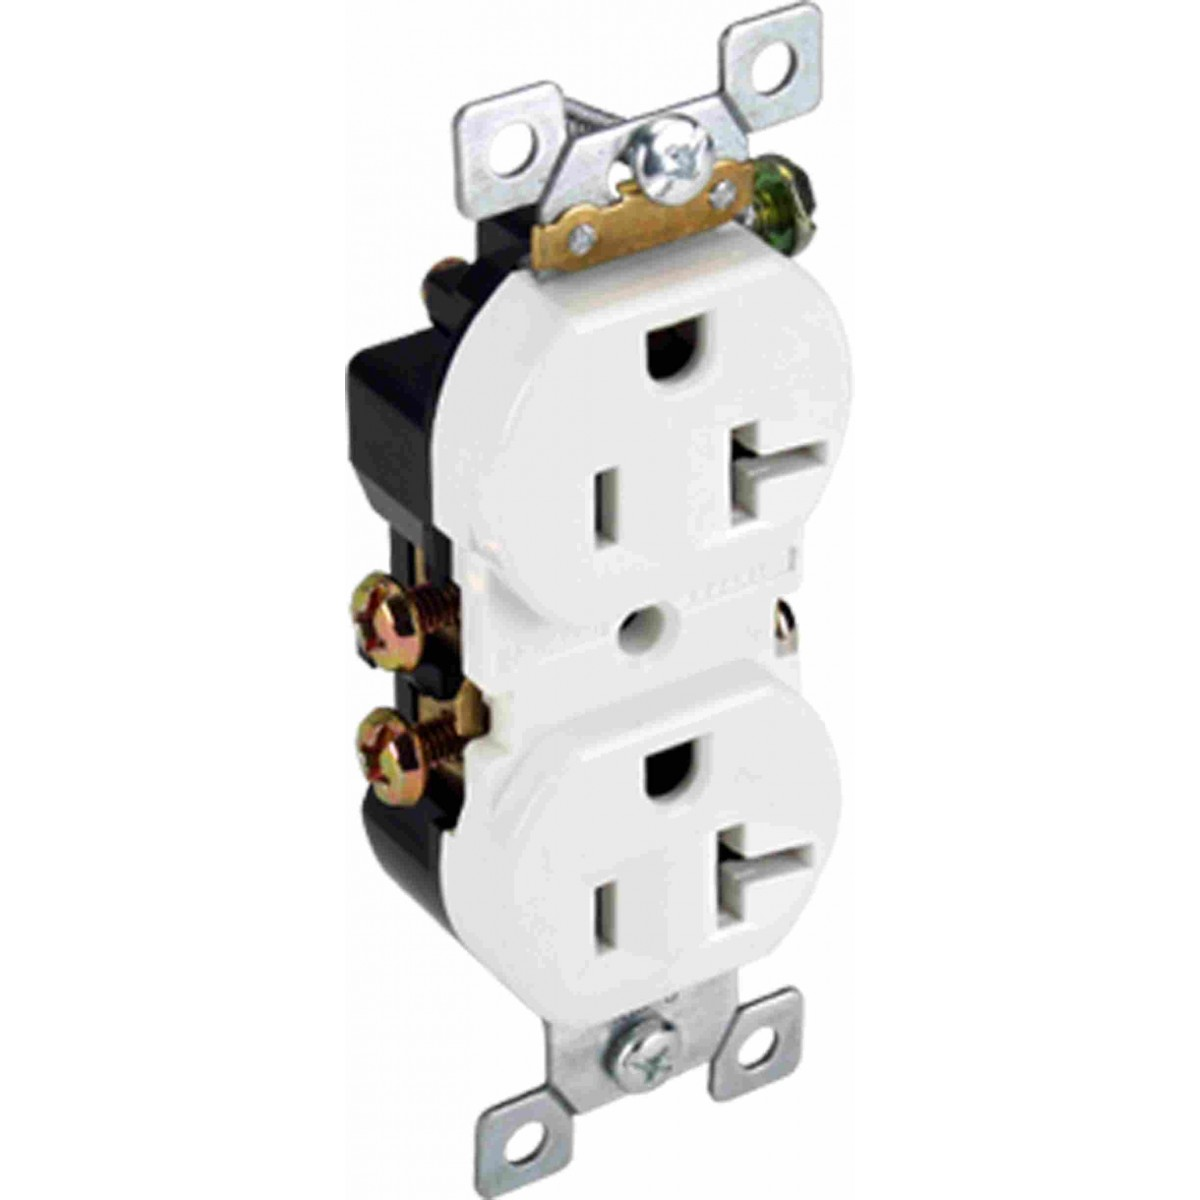 R20 Duplex Receptacle Receptacles Wiring Devices More Views